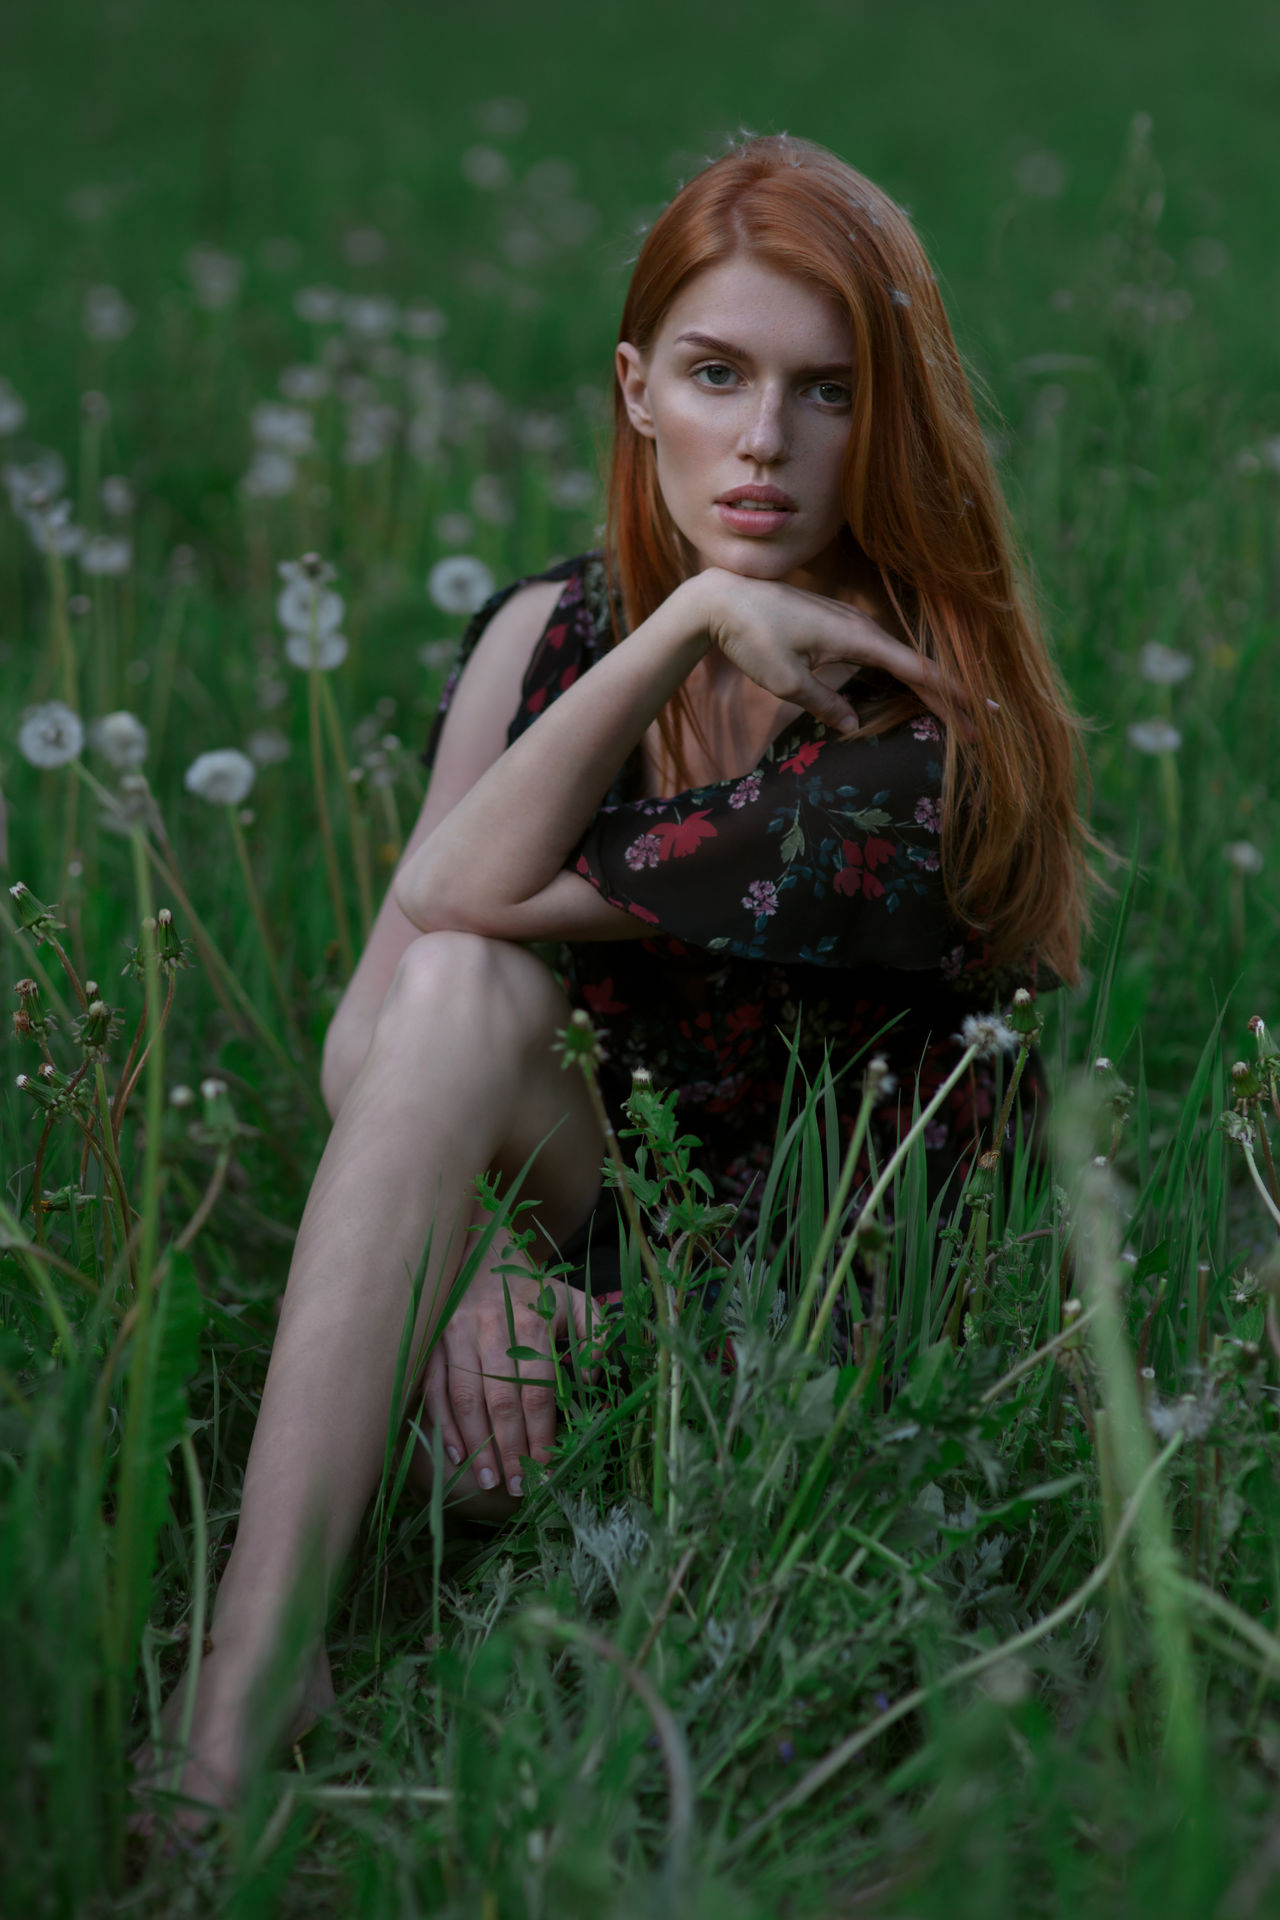 Twisted Sunday. https://www.instagram.com/eglelaurinavice/ Beautiful Woman Beauty Dandelion Day Field Field Flower Forest Grass Growth Lifestyles Looking At Camera Nature One Person Outdoors People Portrait Portrait Of A Woman Real People Twisted Young Adult Young Women